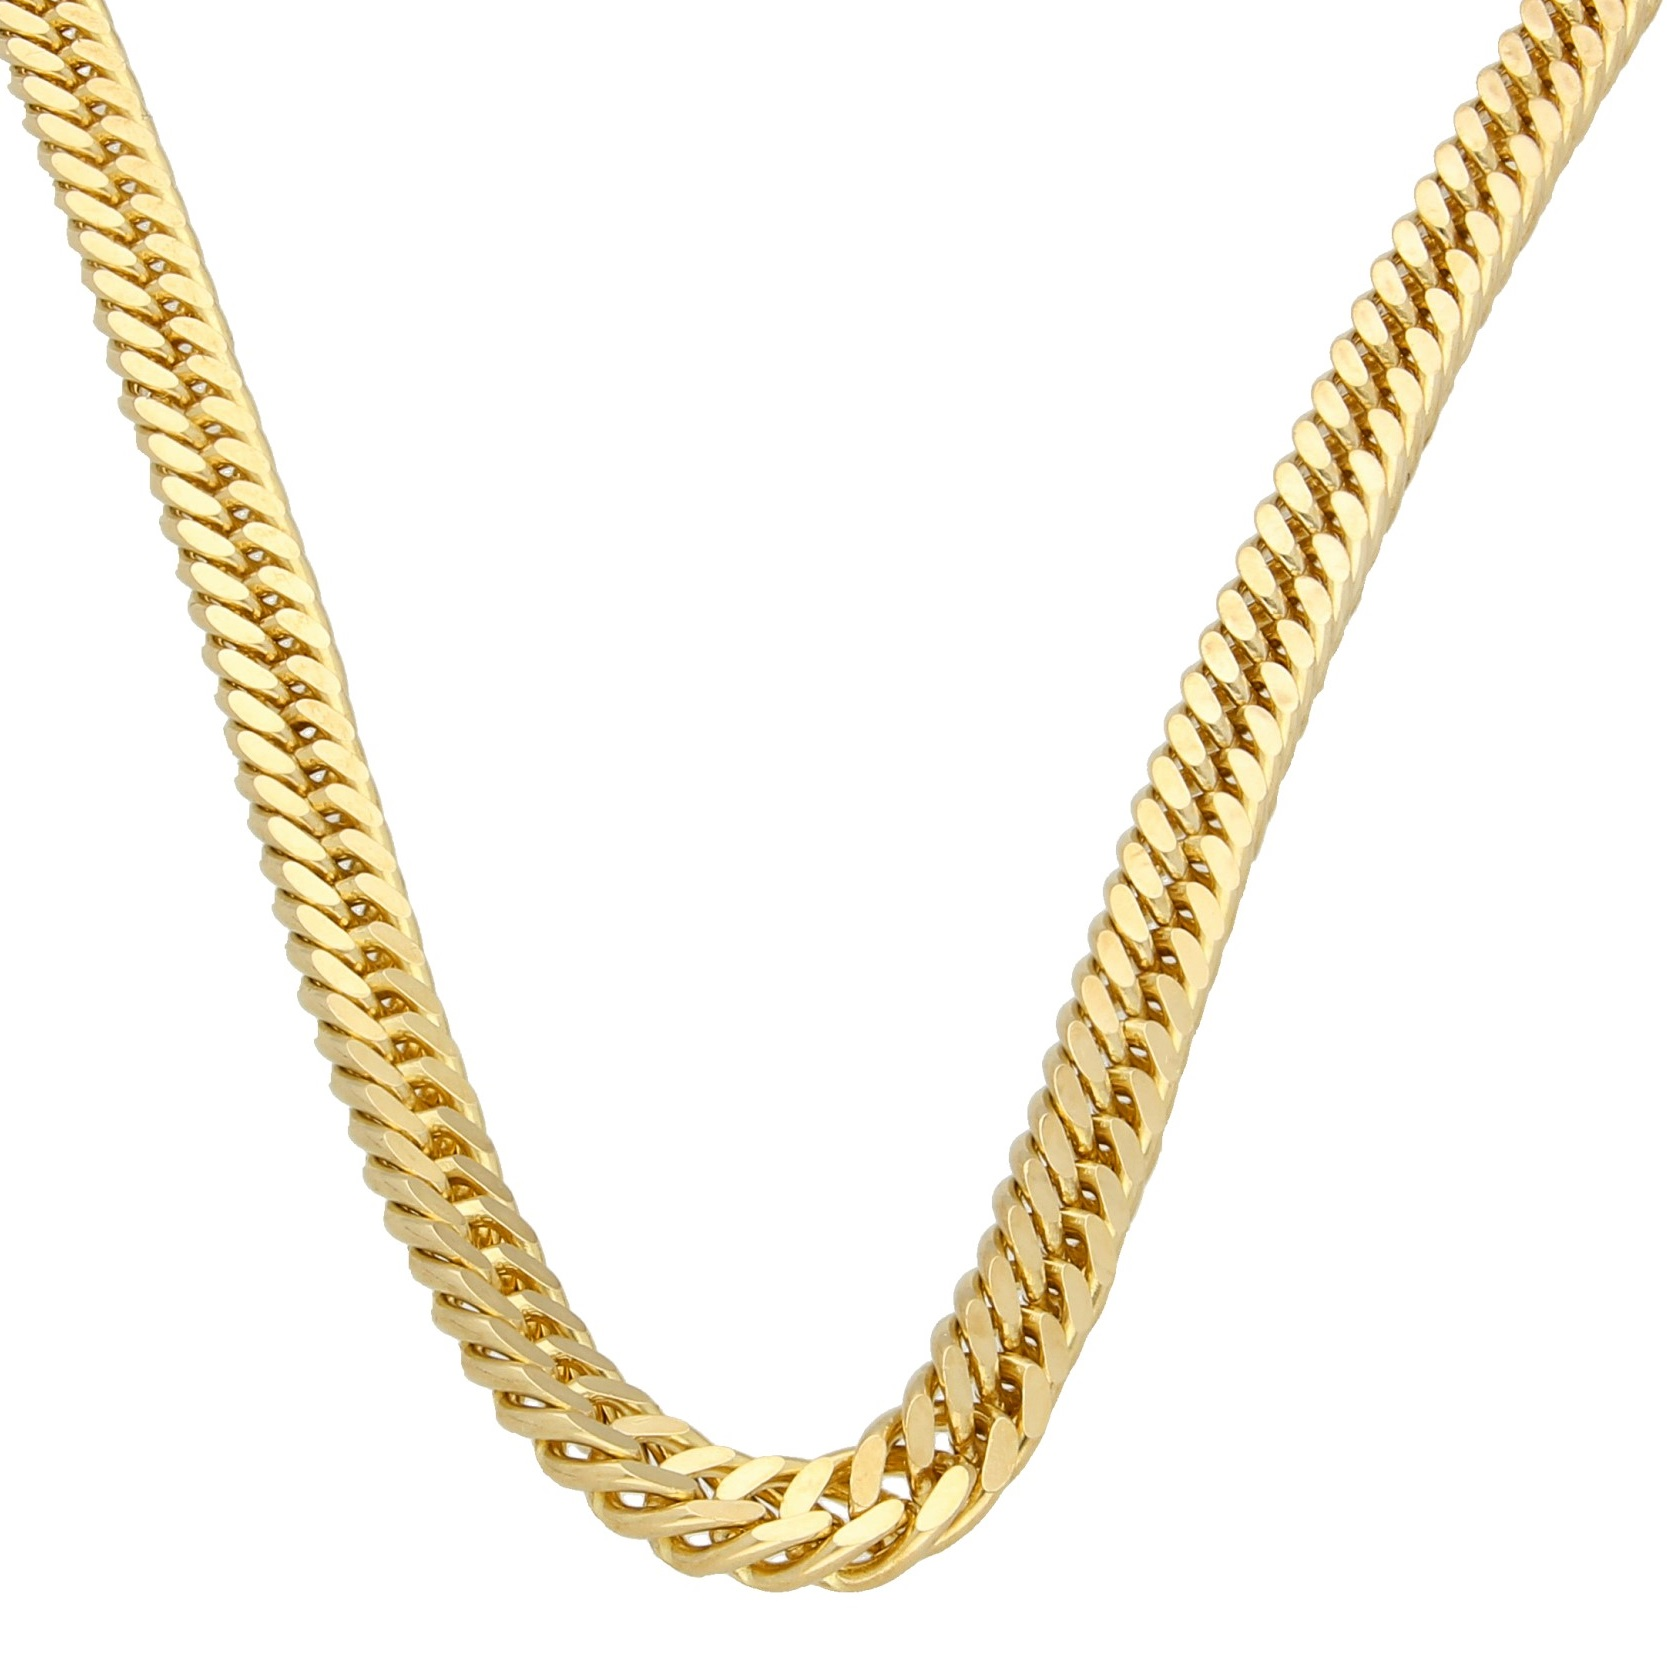 9 ct yellow  gold chain new  curb extra strong  18 inch